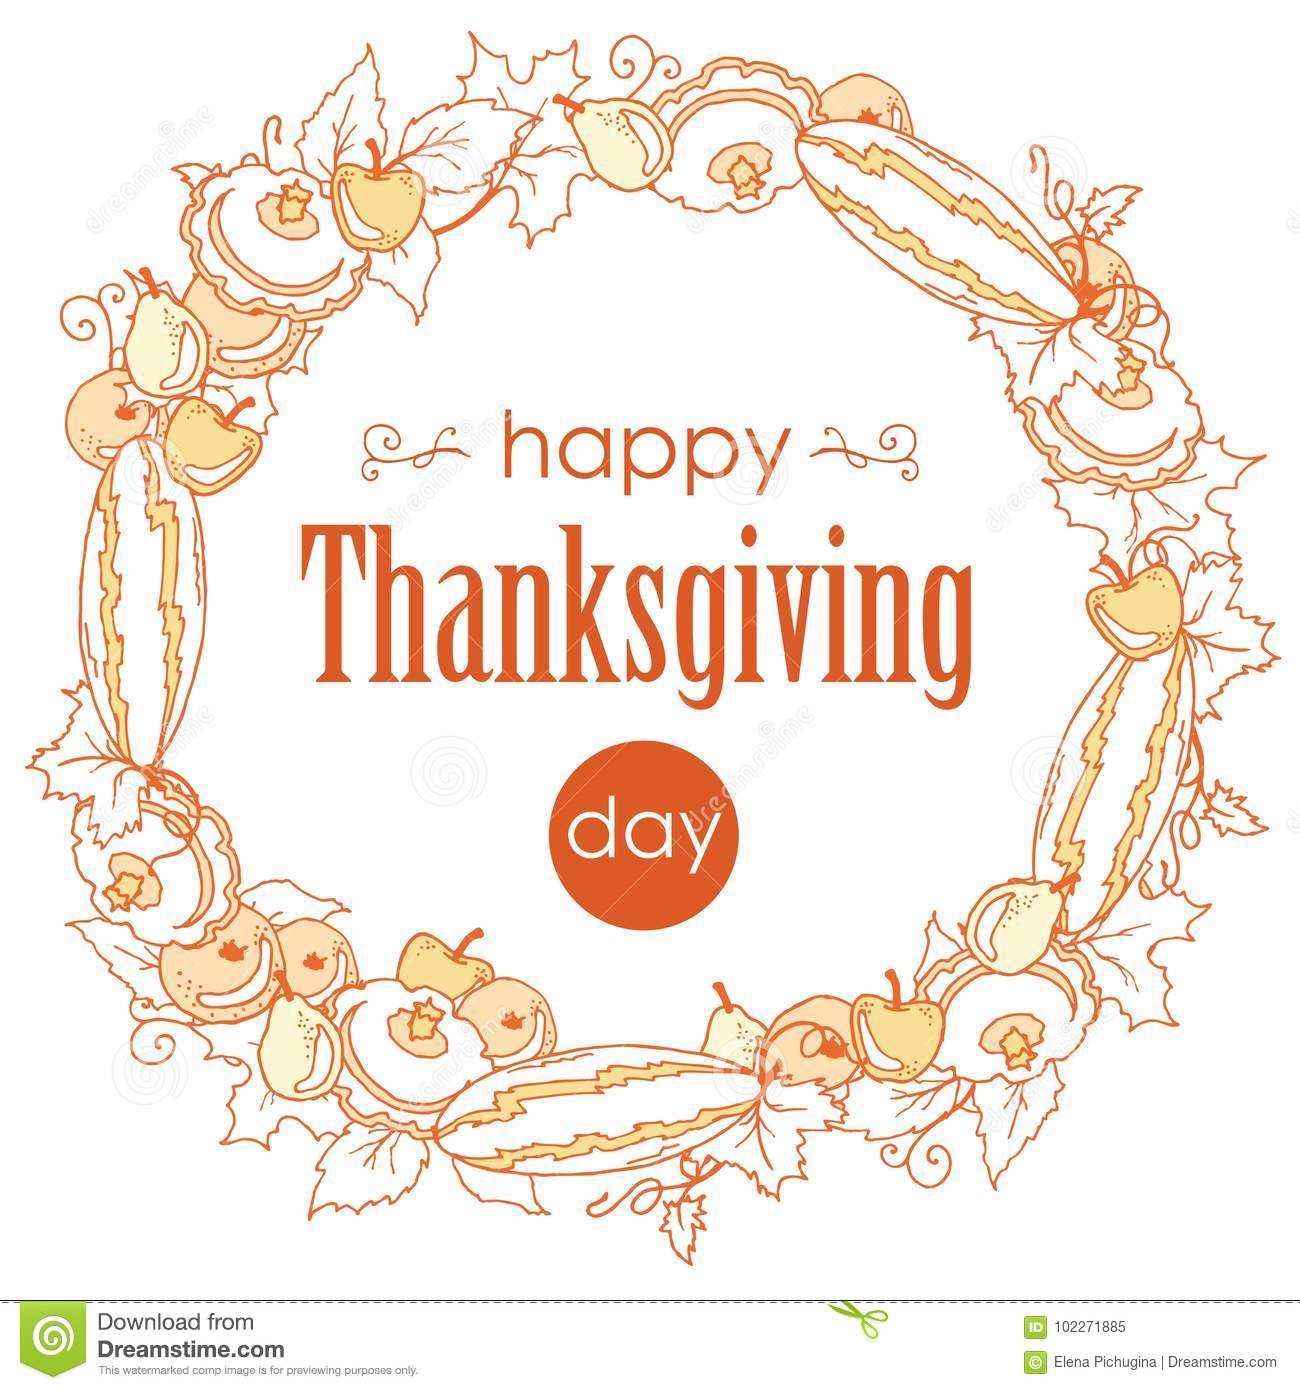 To acquire Gifts day Thanksgiving pictures picture trends